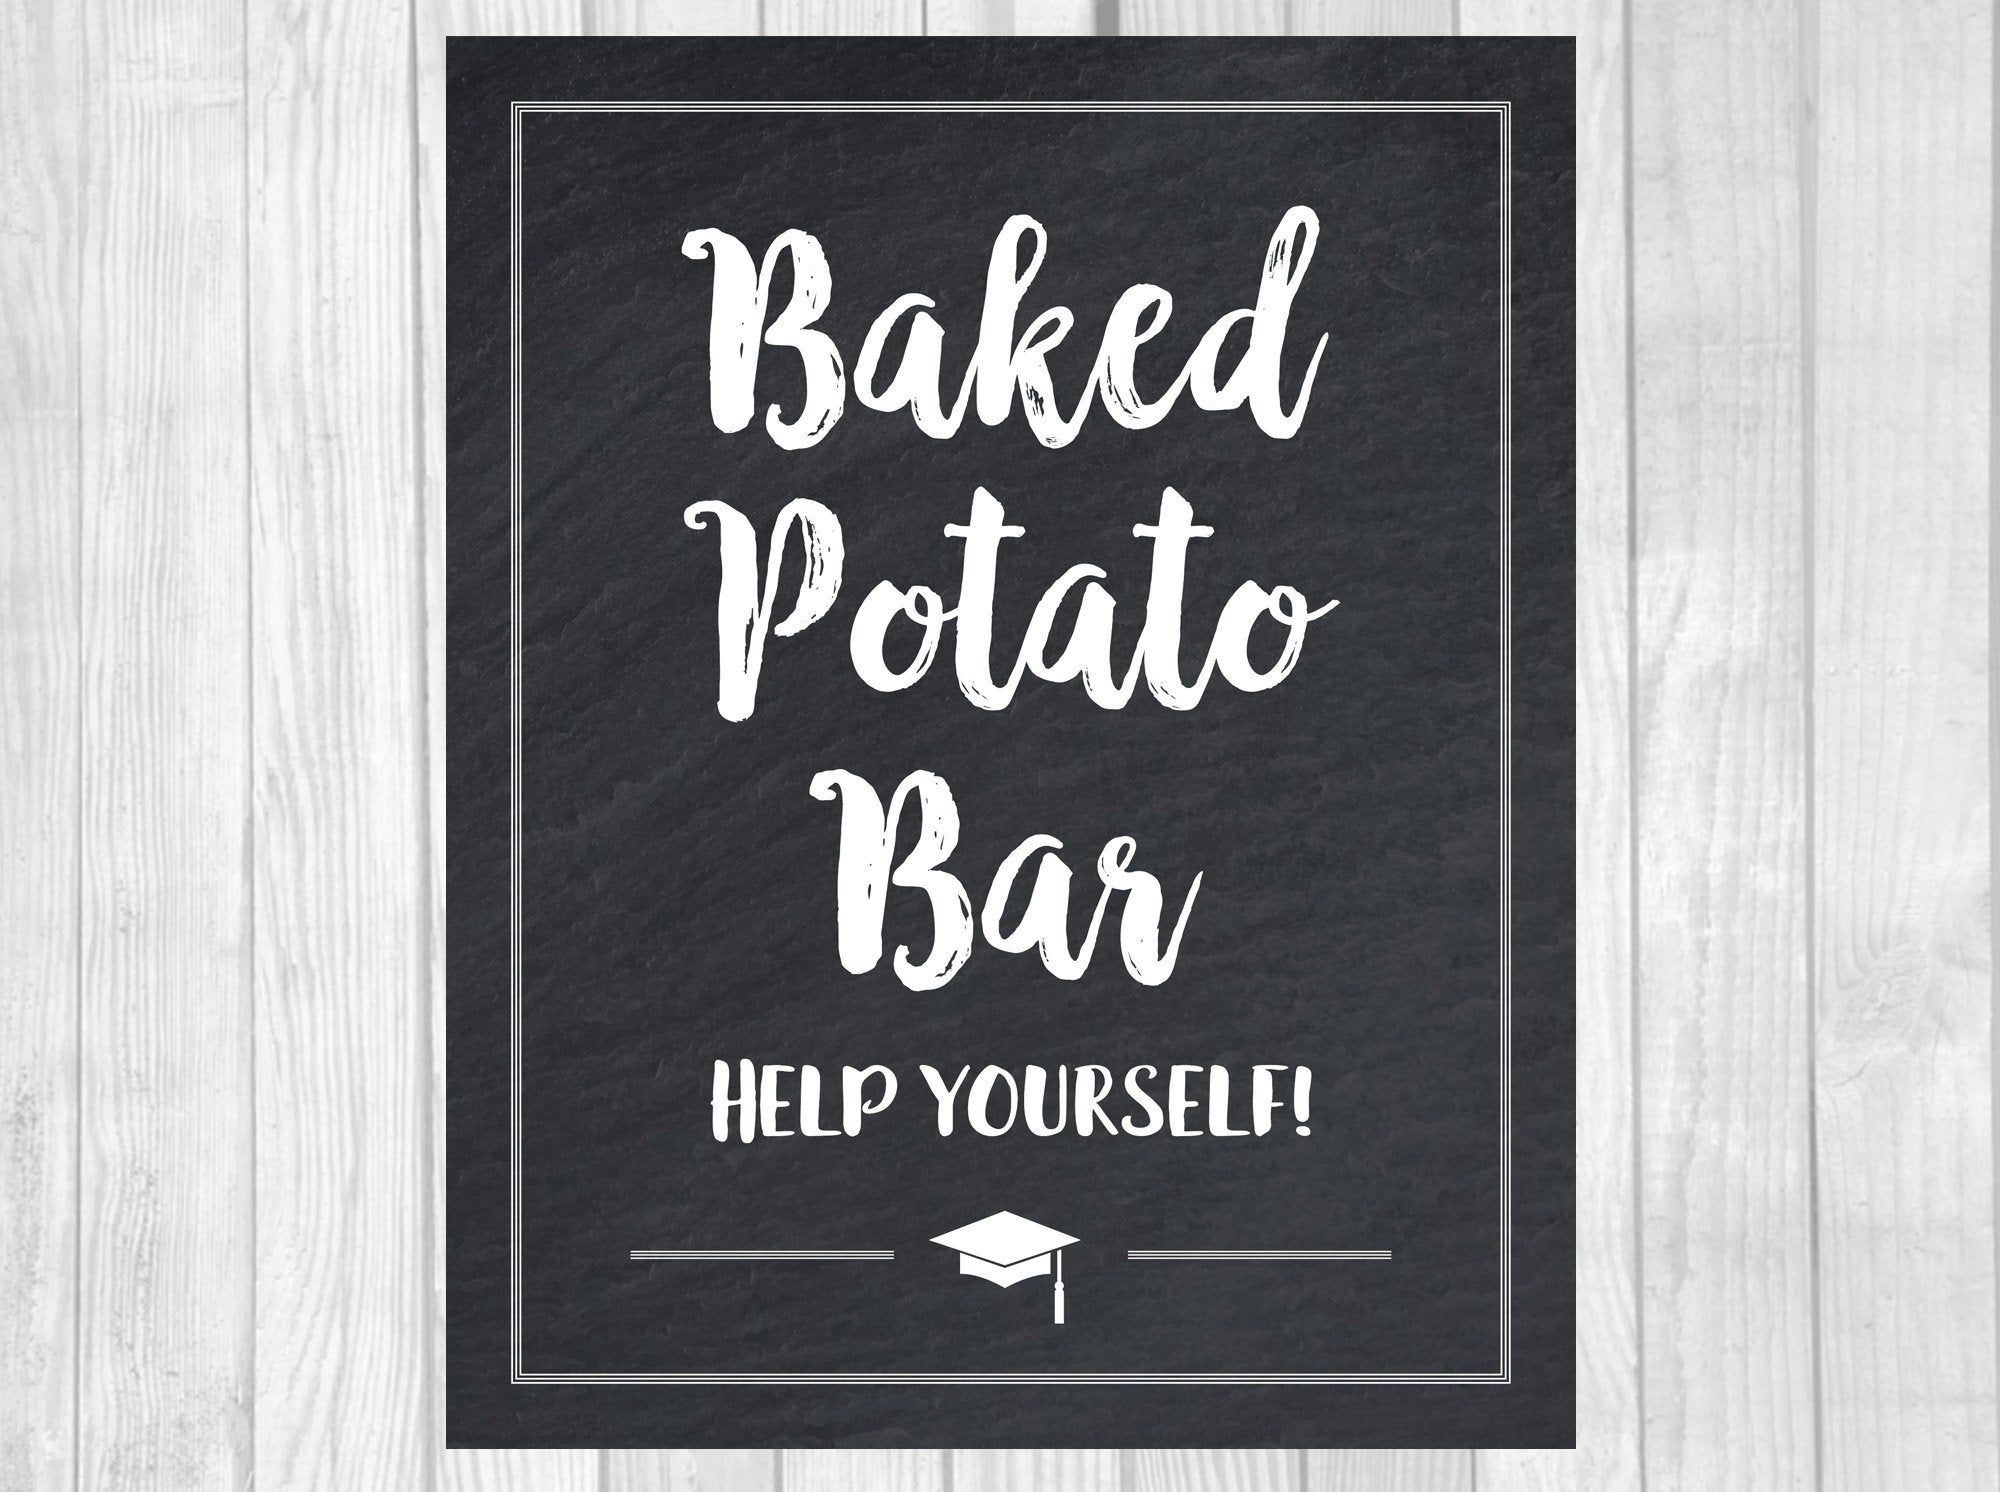 Graduation Party Baked Potato Bar 5x7 Or 8x10 Printable